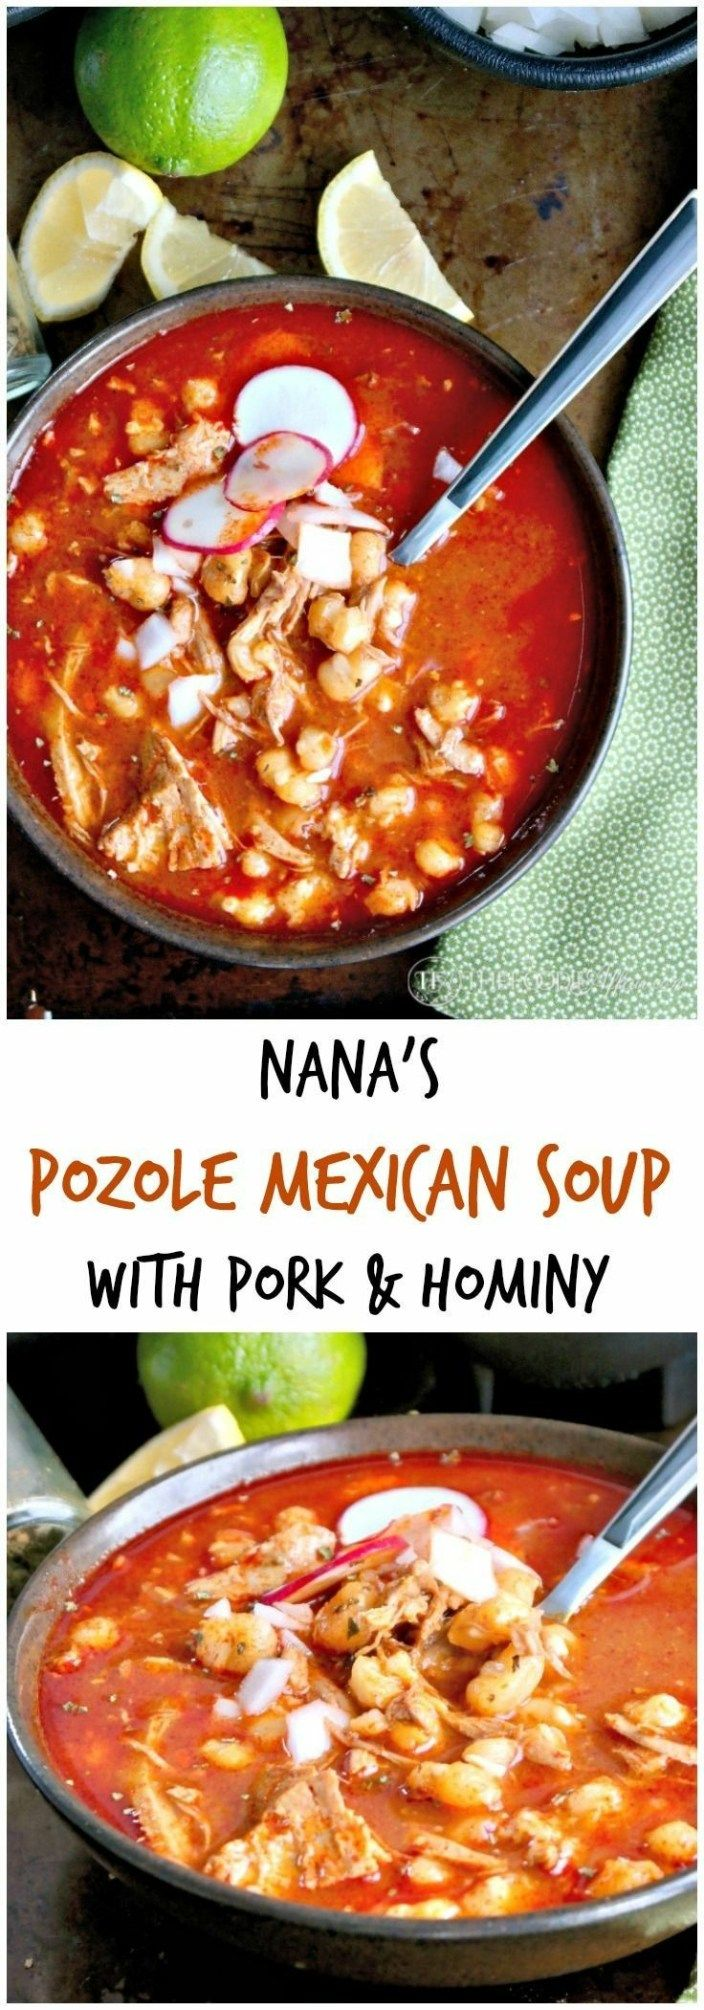 Photo of Nana's Pozole Mexican Soup with Pork & Hominy | The Foodie Affair